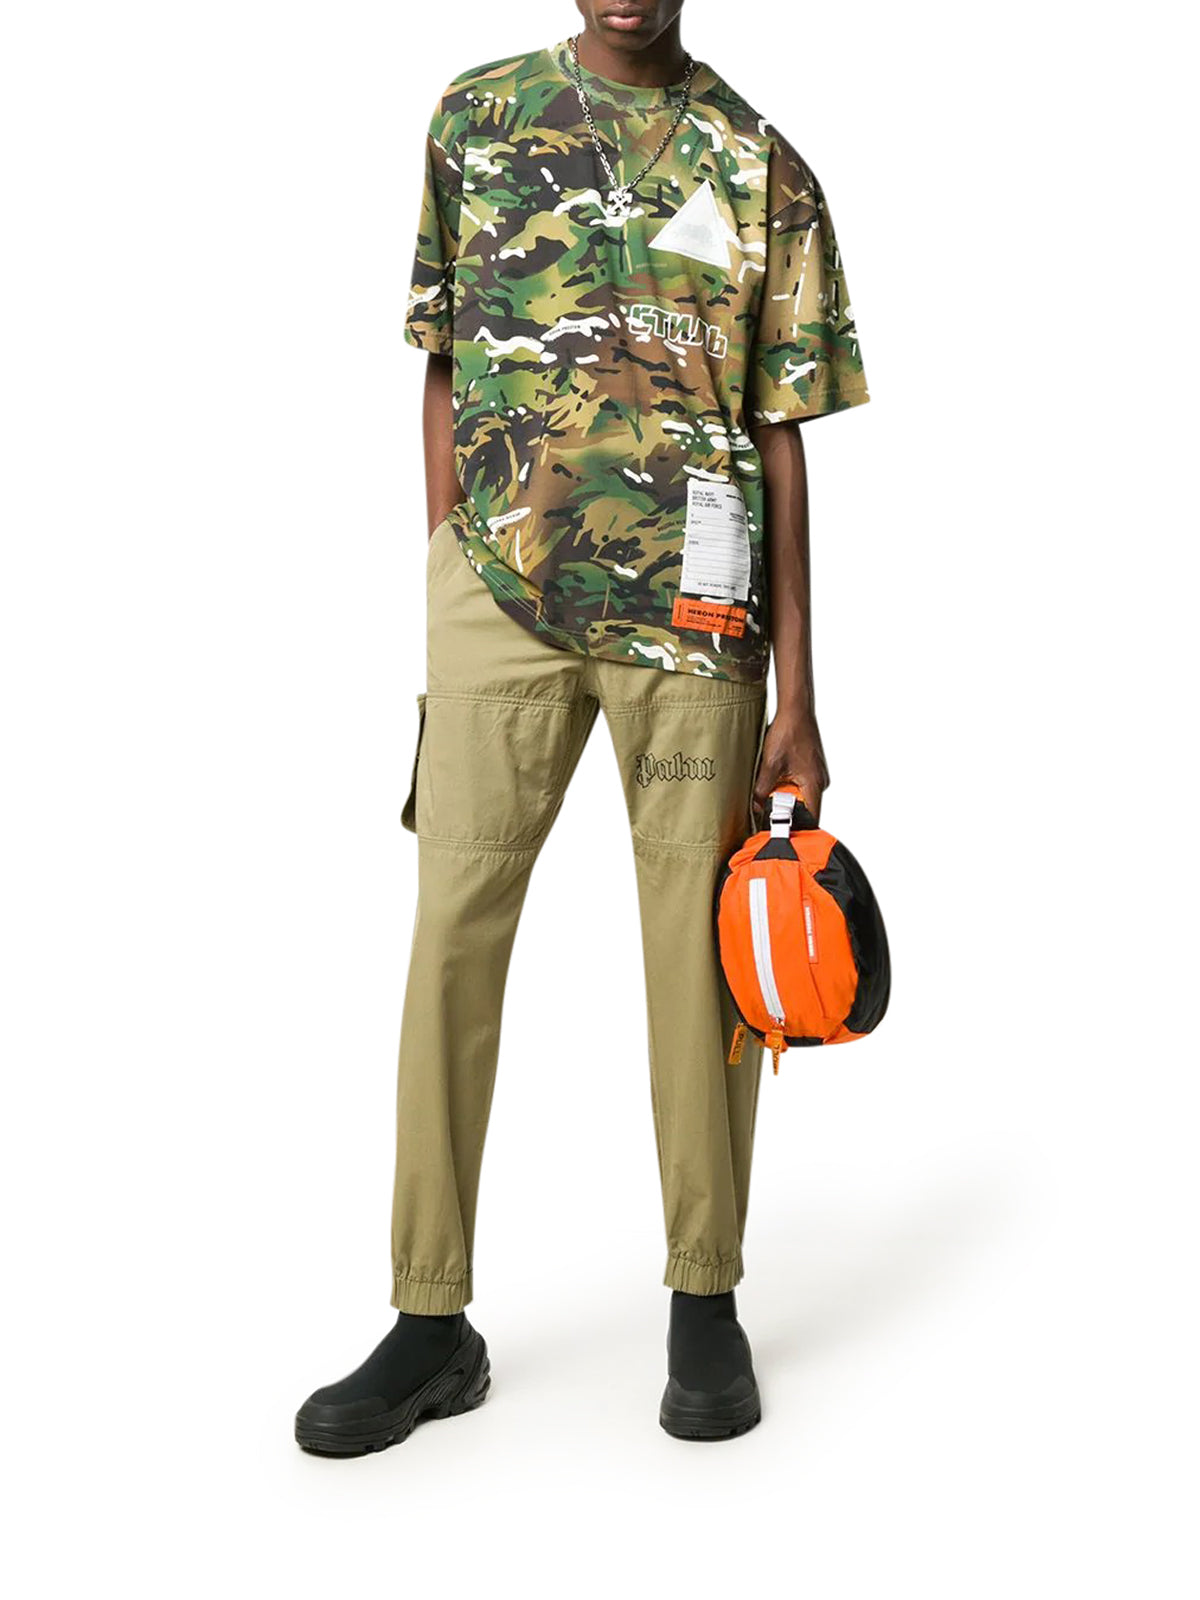 HP X MINISTRY OF DEFENCE T-shirt Camouflage